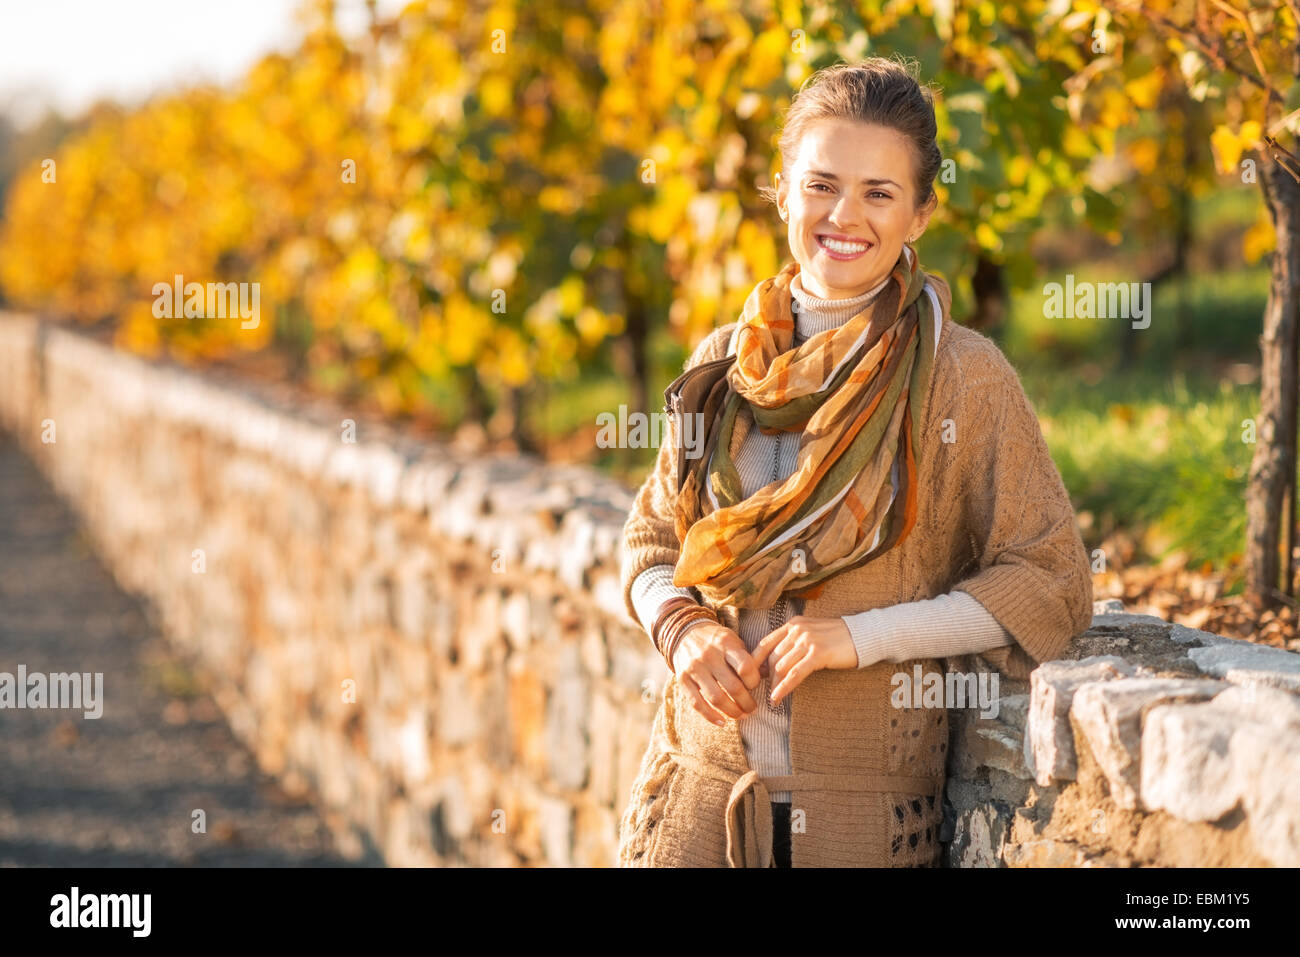 Portrait of smiling young woman in autumn park - Stock Image